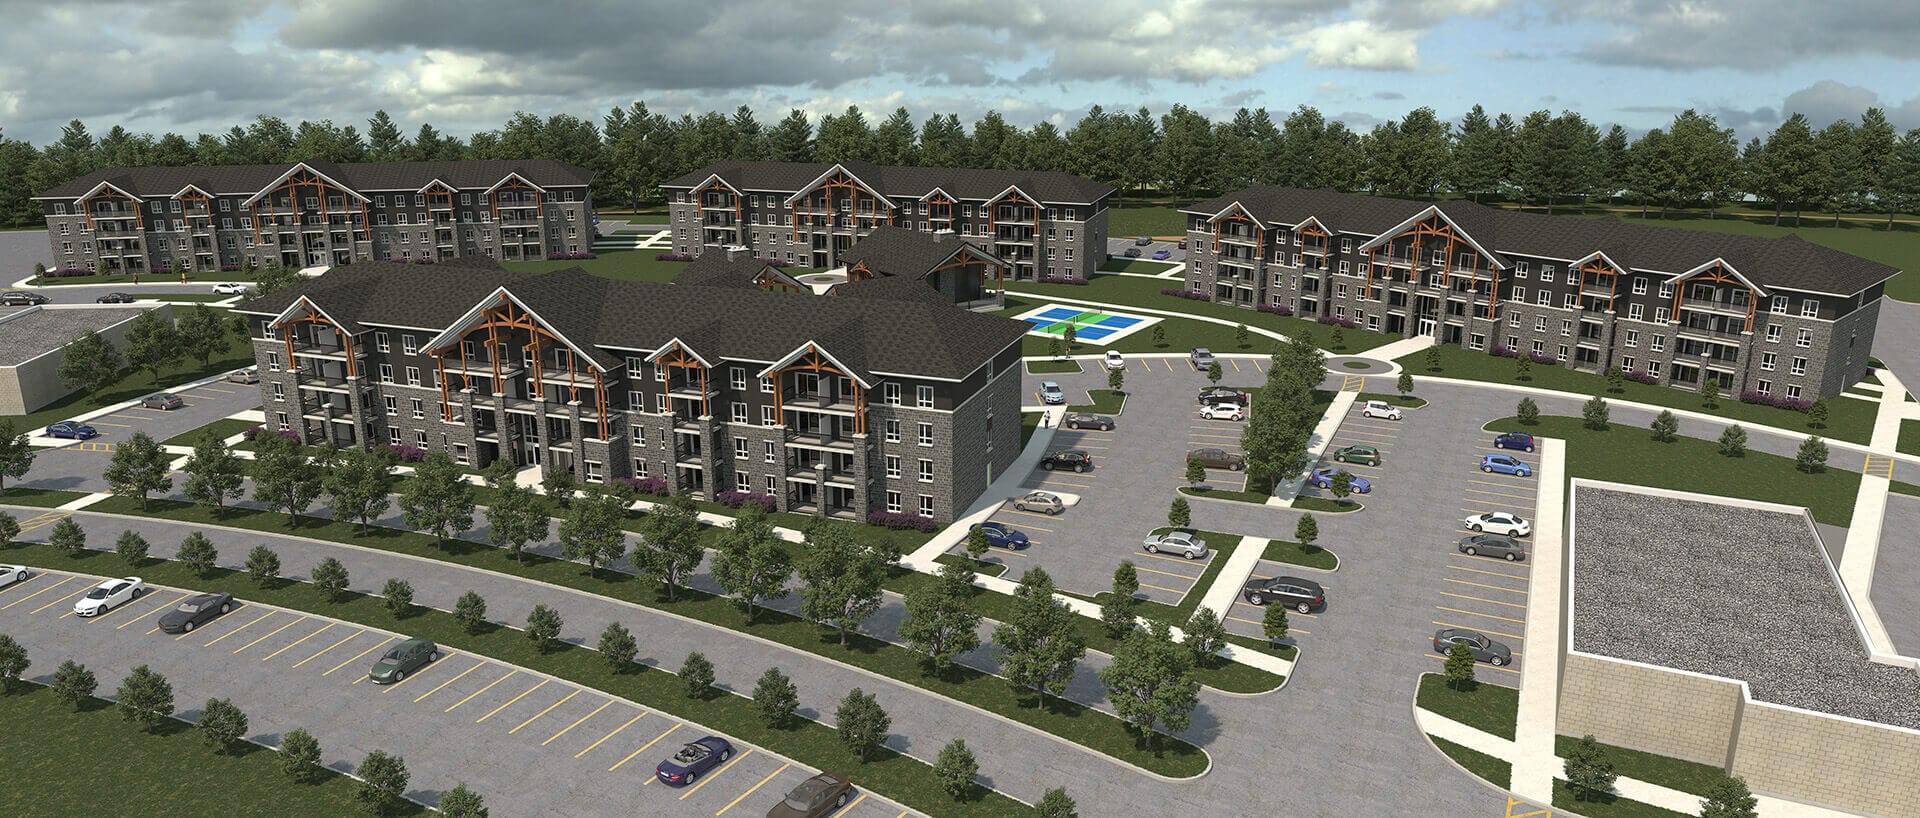 Birds eye rendering of Talisman Place in Gravenhurst, Ontario